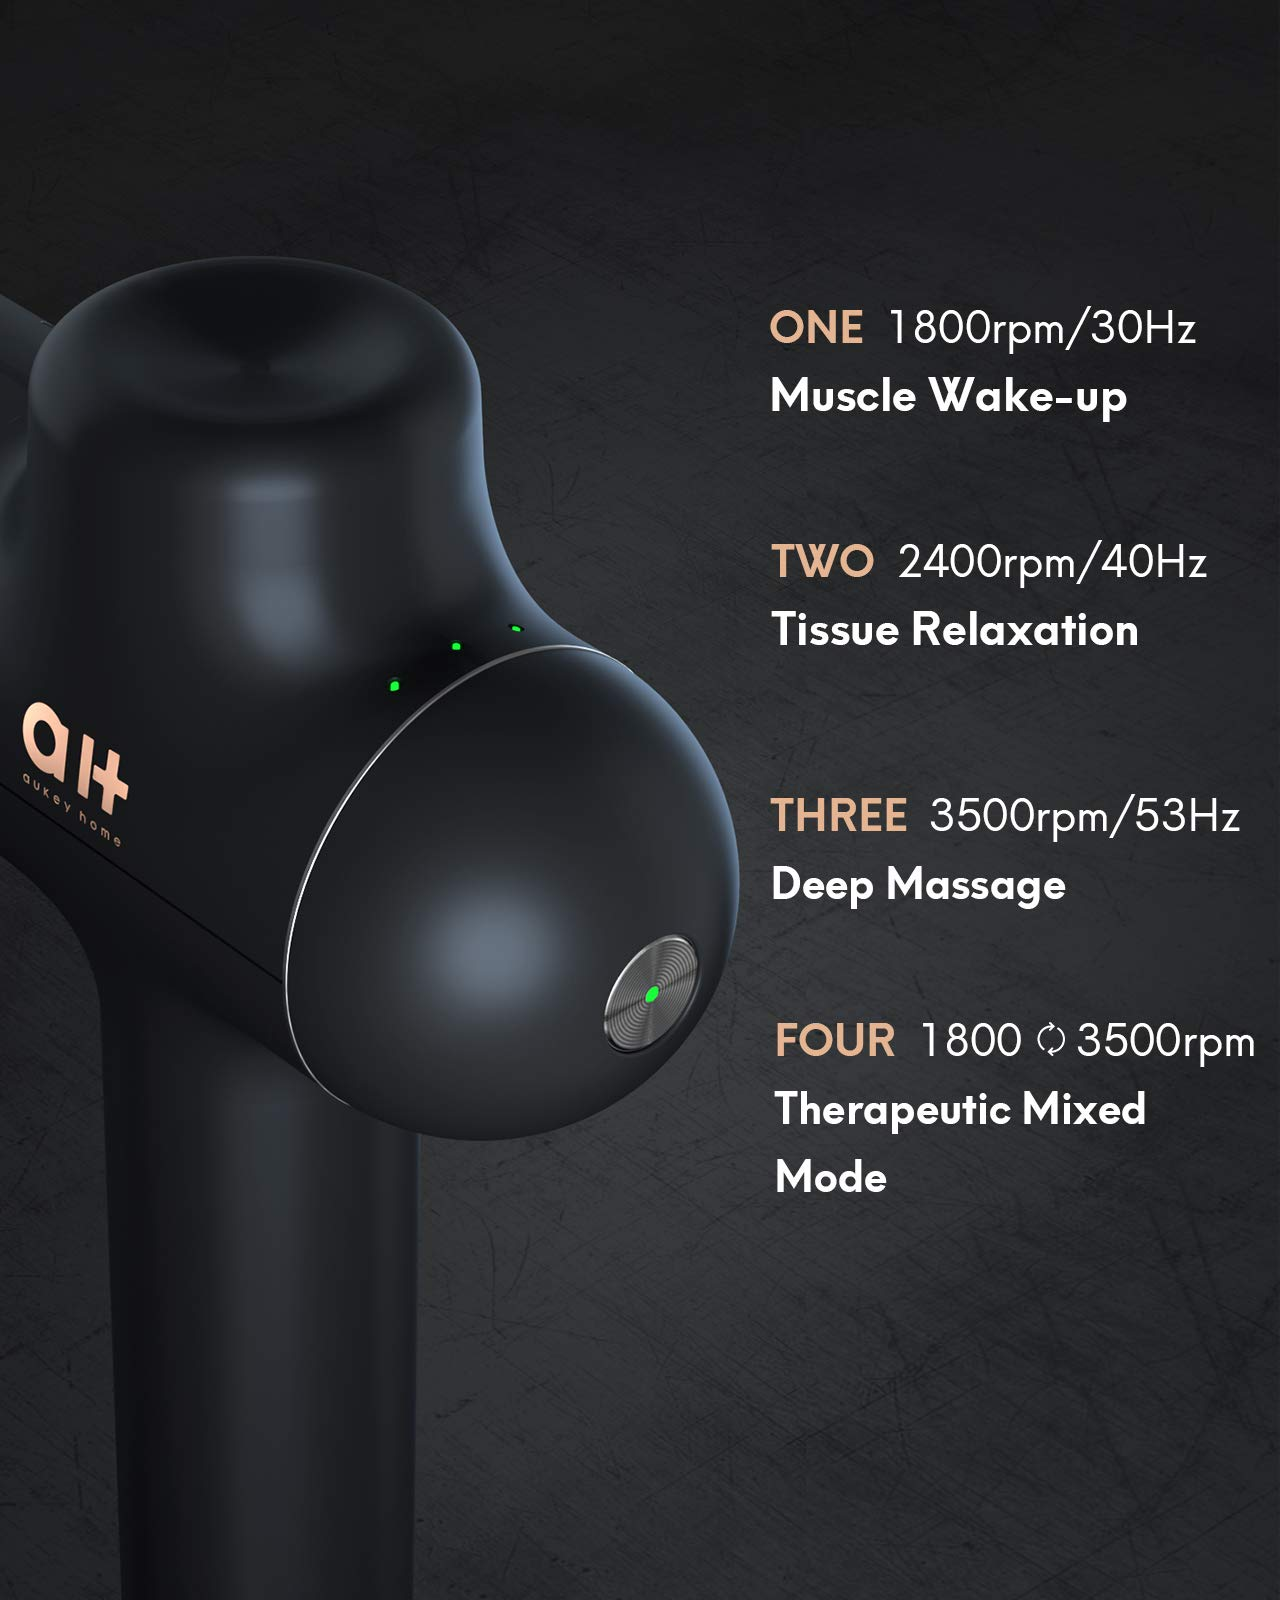 Massage Gun for Athletes, Deep Tissue Muscle Massager, High-Intensity Percussion and Ultra Slim Design for Long Time Handheld, 8 Heads with Therapeutic Mixed Mode, Portable Waterproof Travel Bag